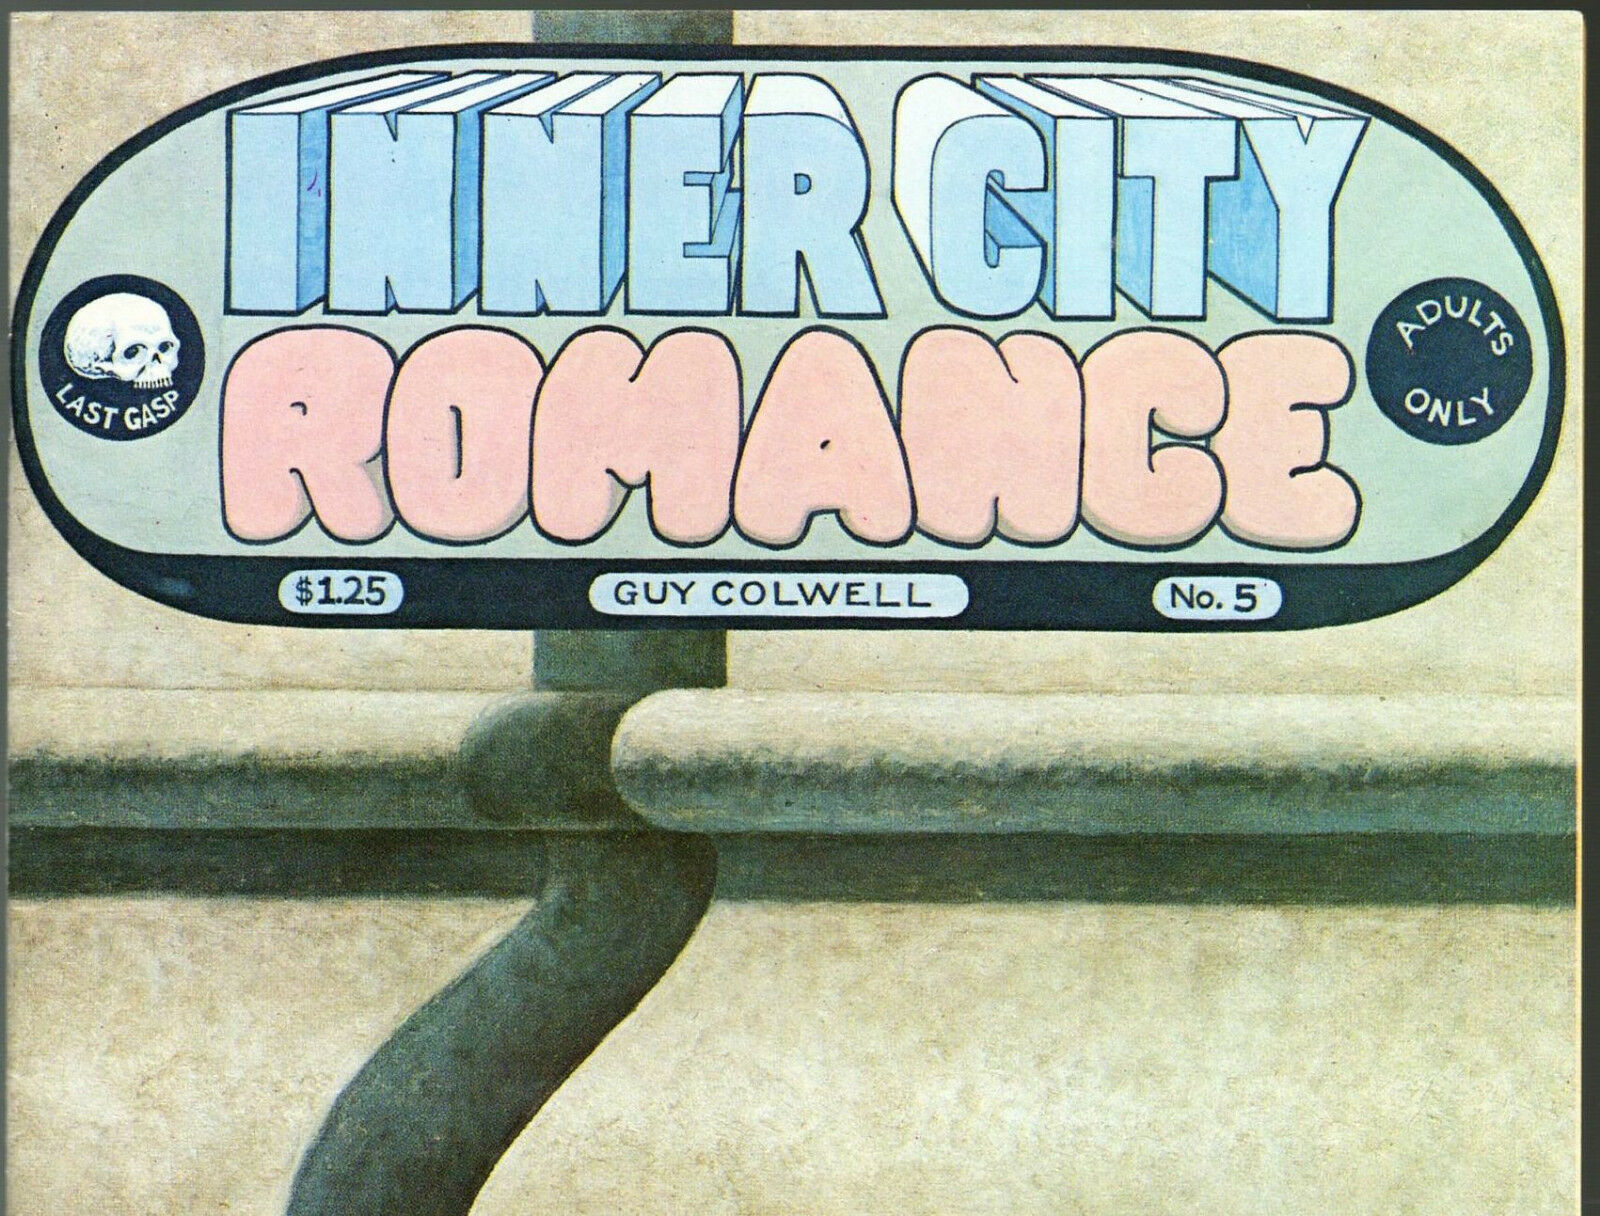 Inner City Romance # 5, Guy Colwell, Last Gasp 1978, vintage underground comix